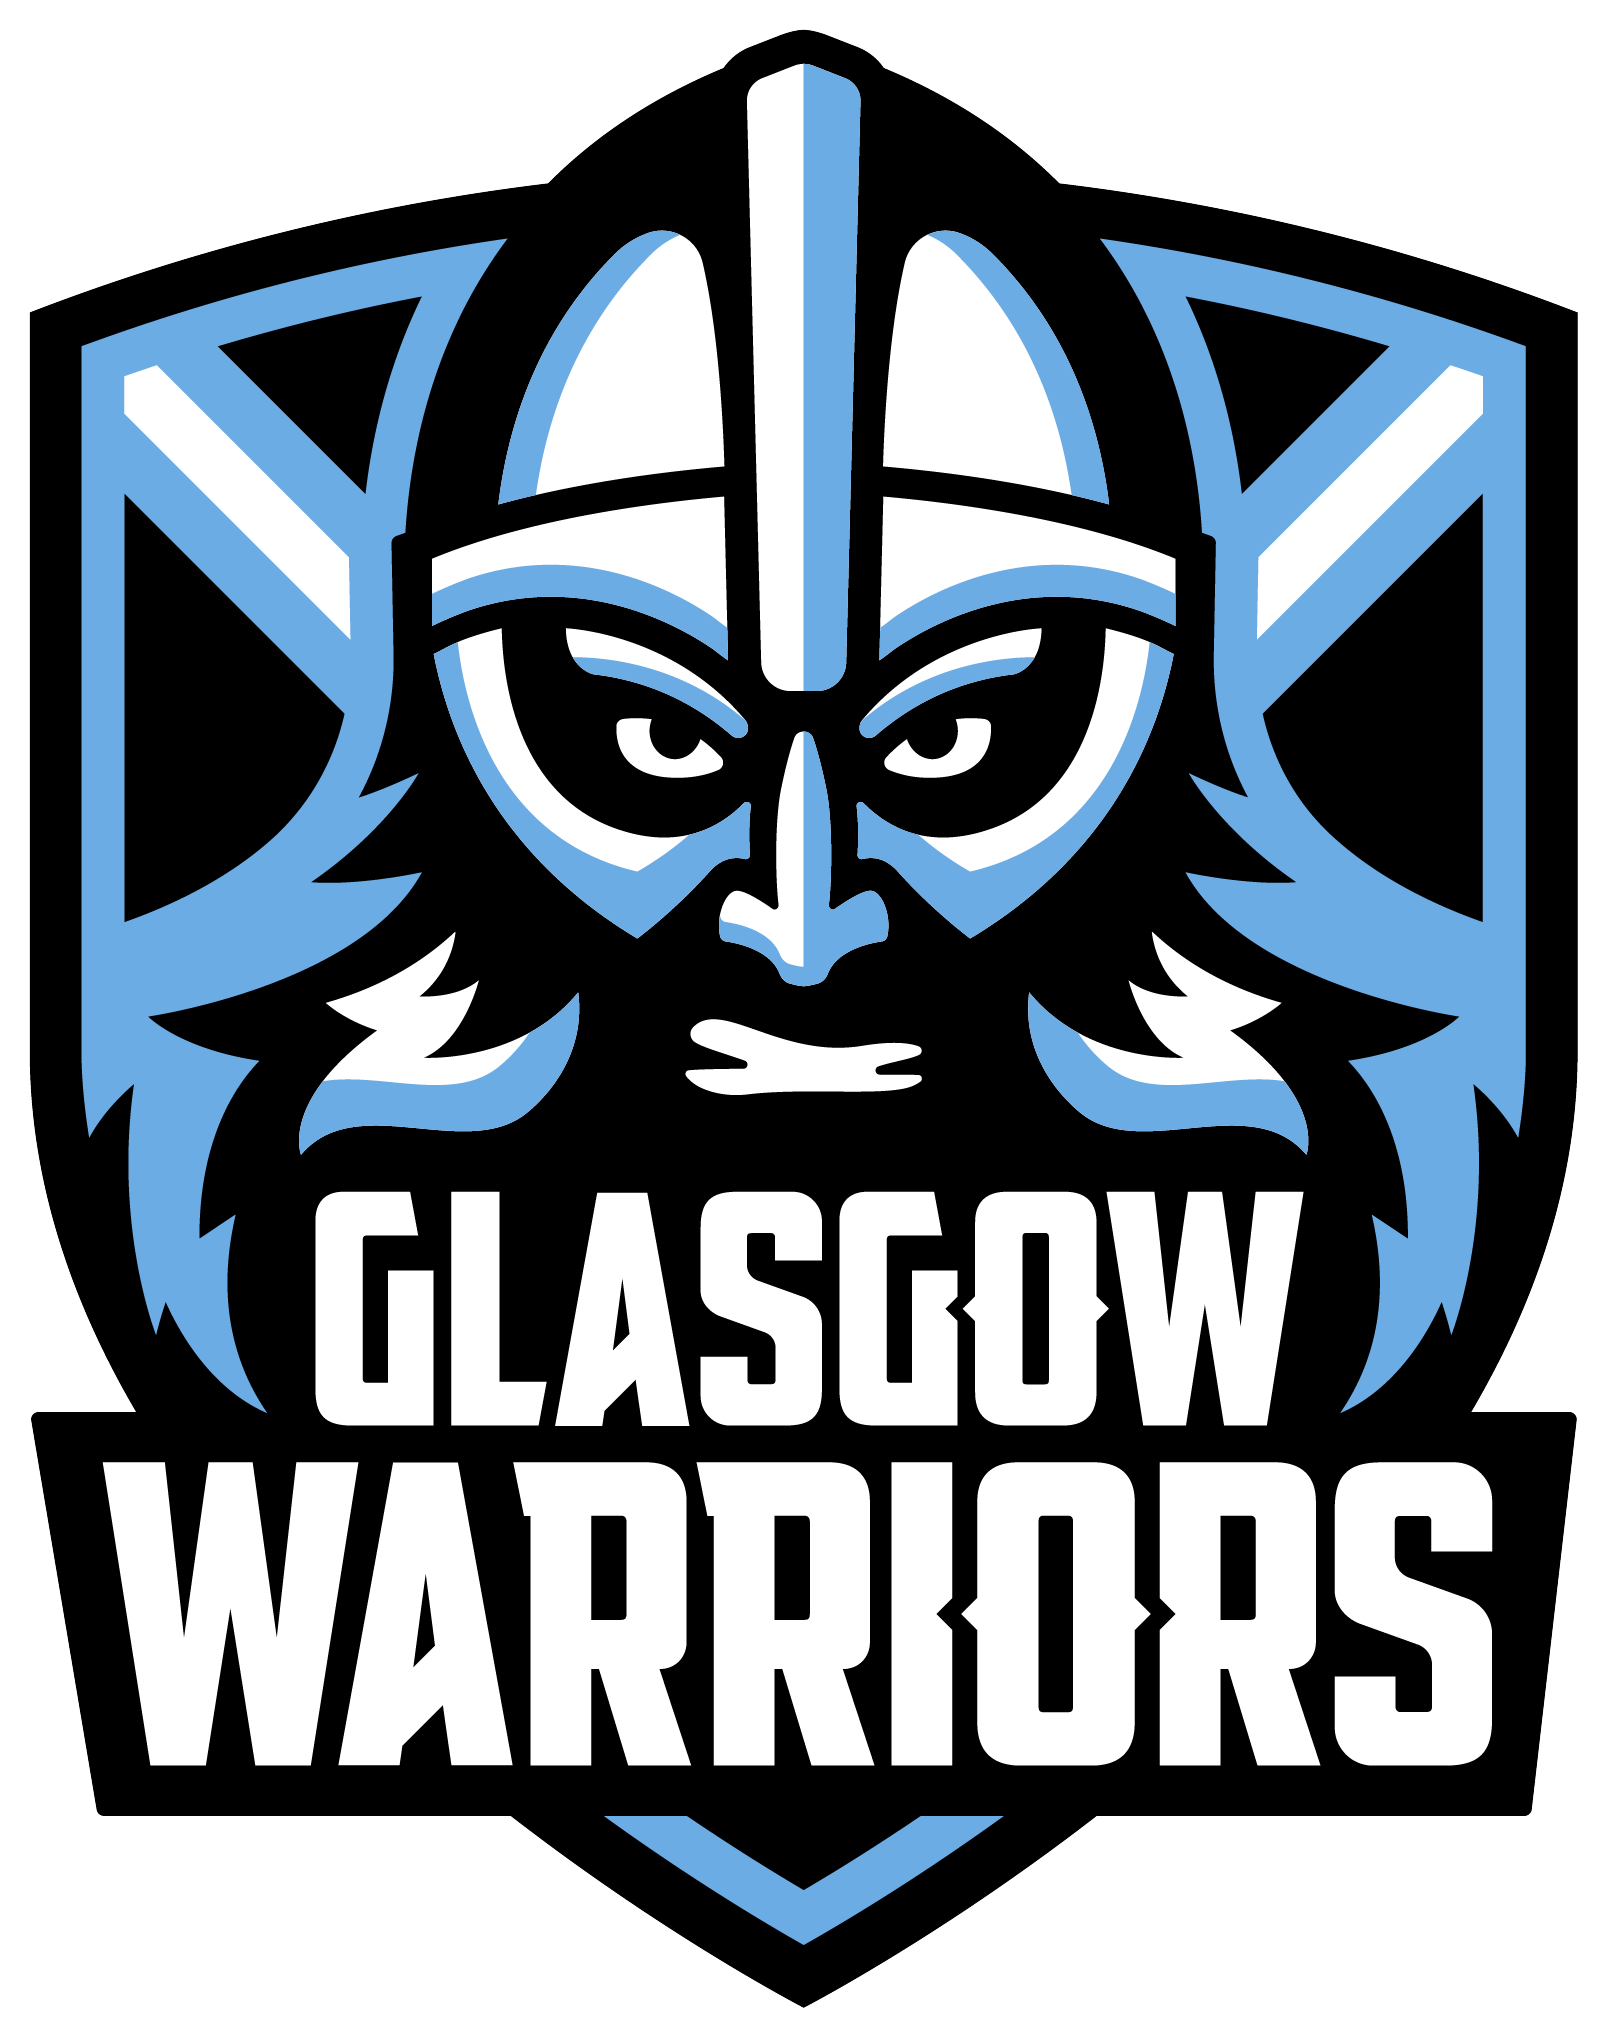 Glasgow Warriors logo in colour with clear background